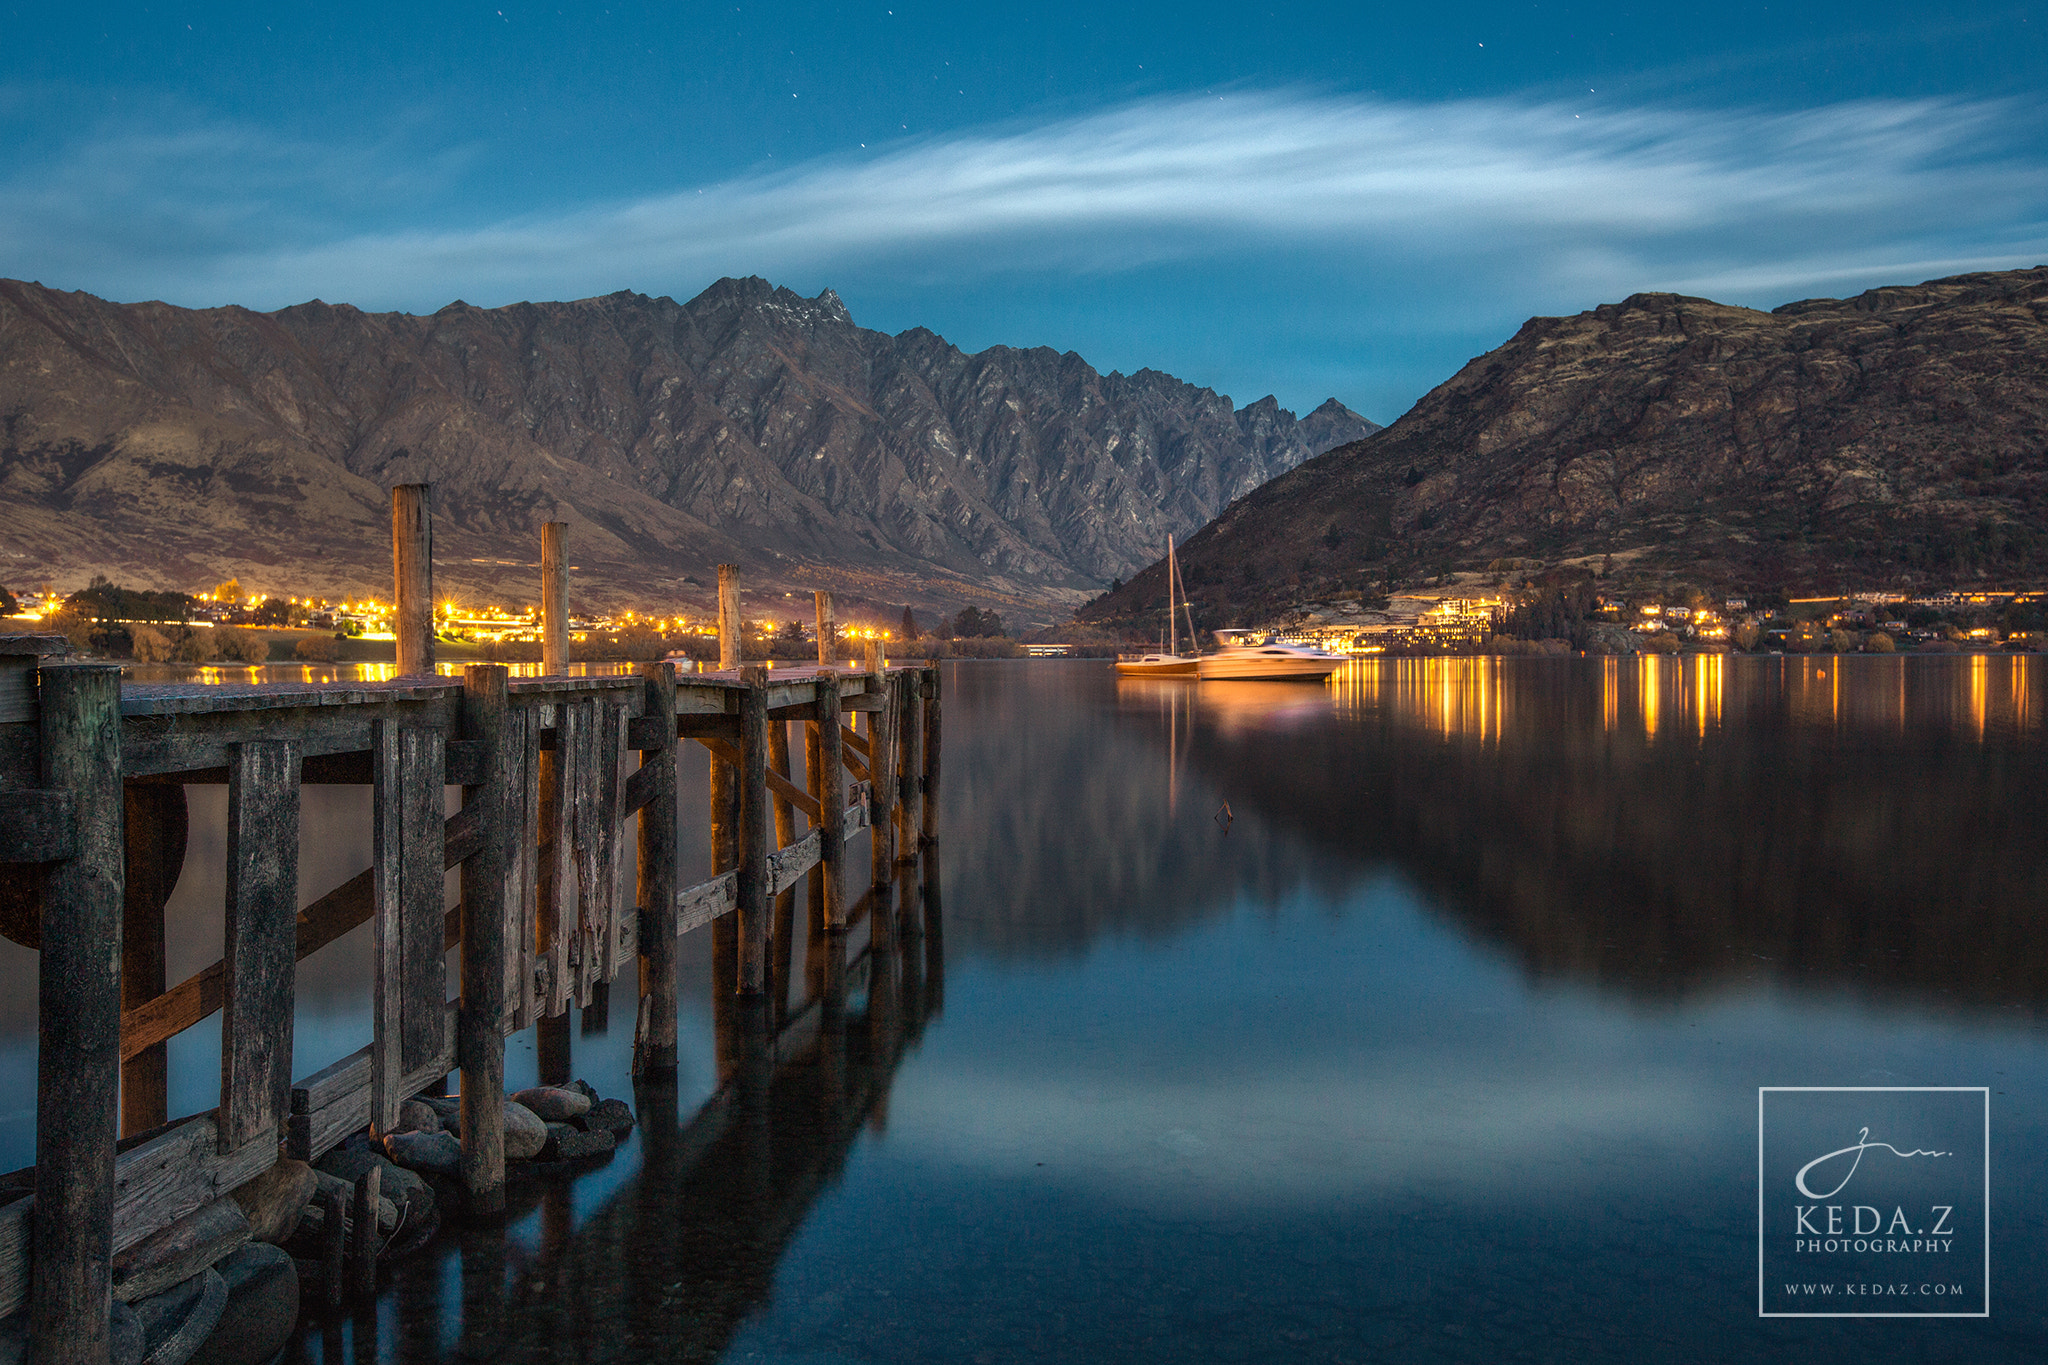 Photograph Queenstown NZ by Keda.Z Feng on 500px